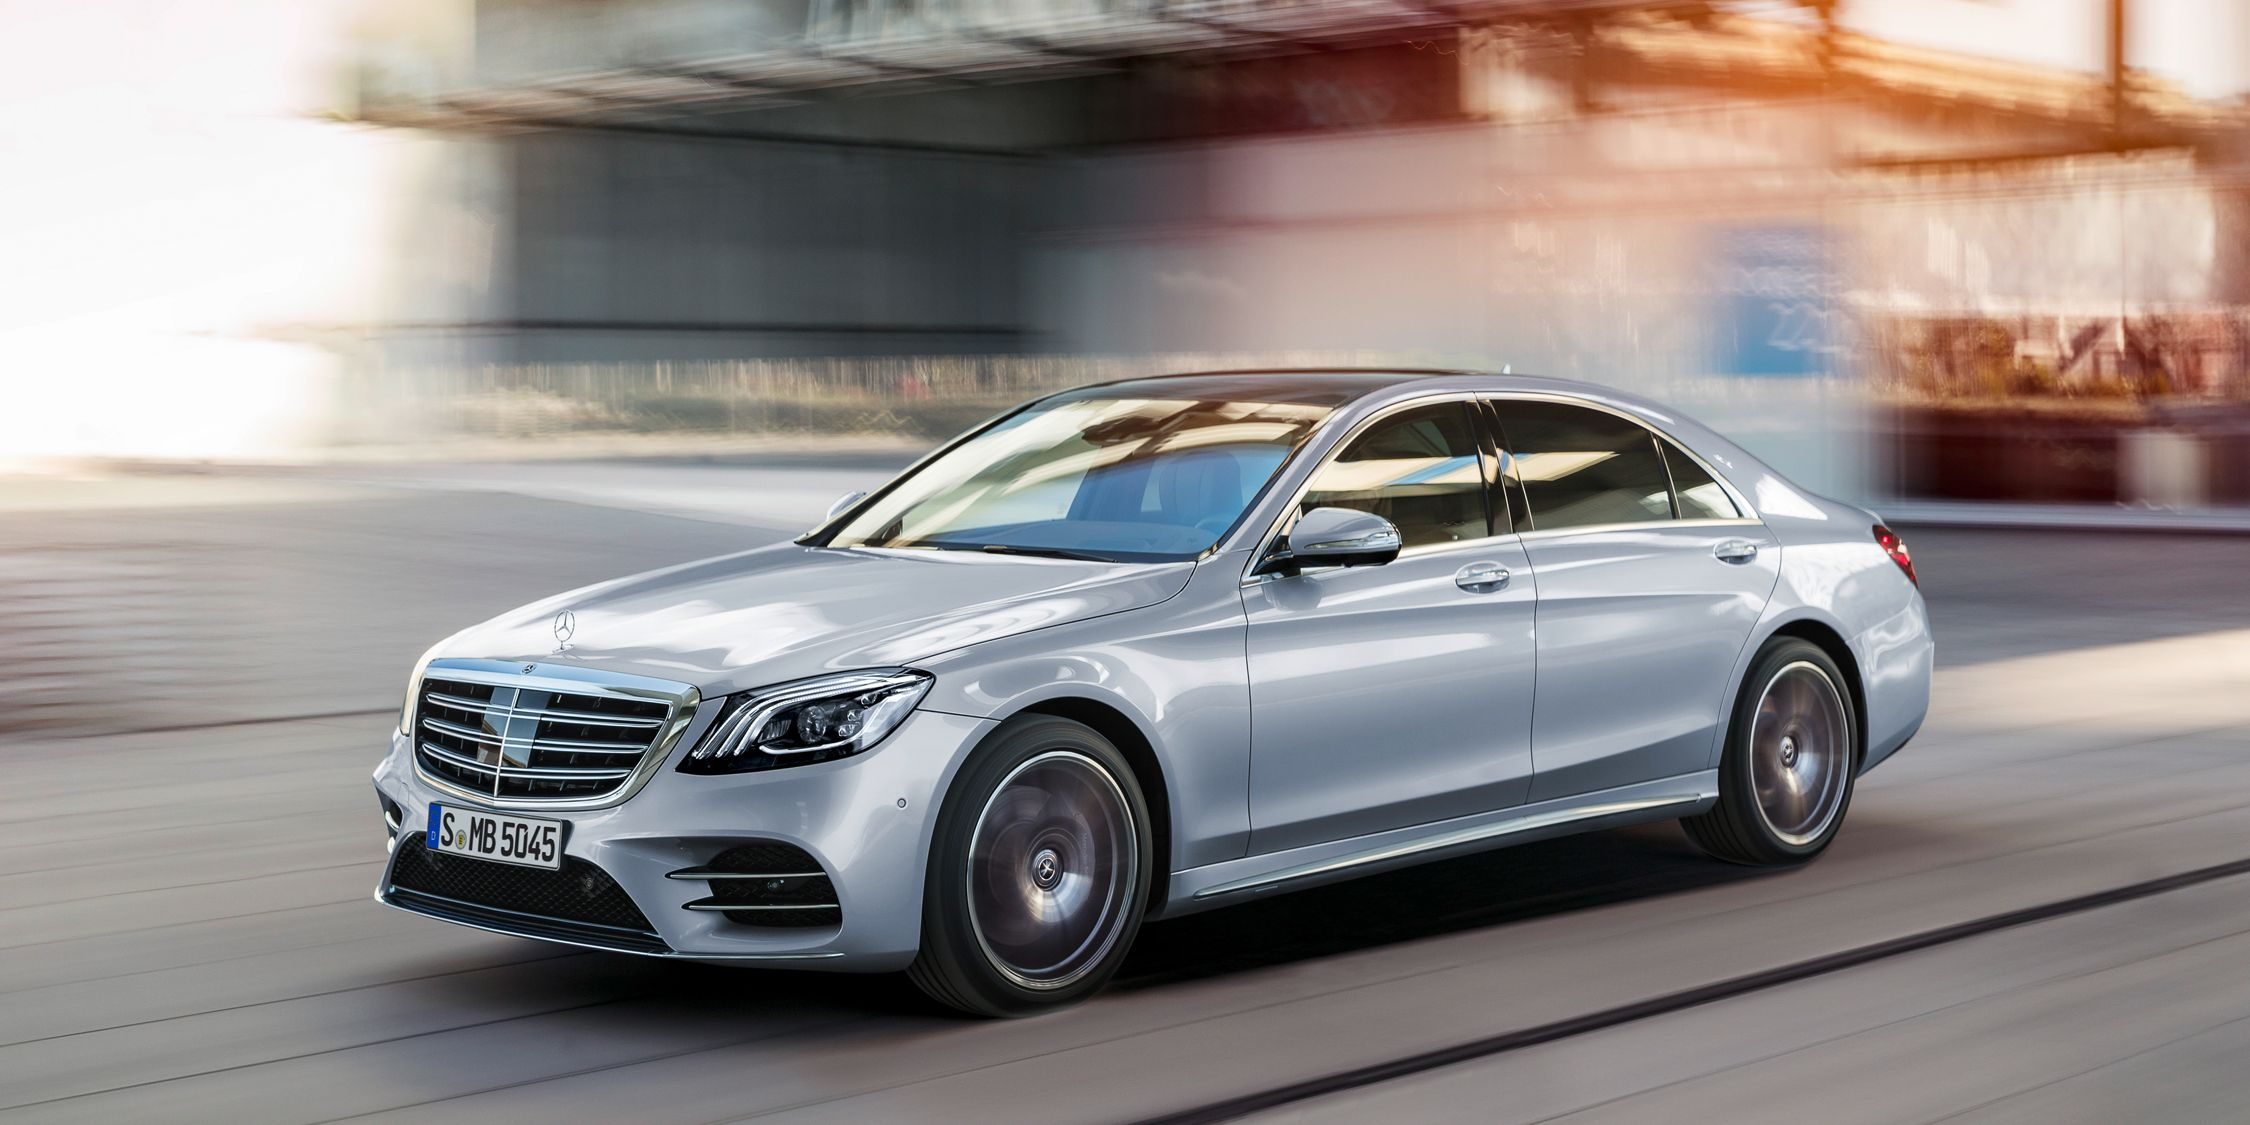 2018 Mercedes Benz S Class Sedan Lineup Detailed From Top To Bottom